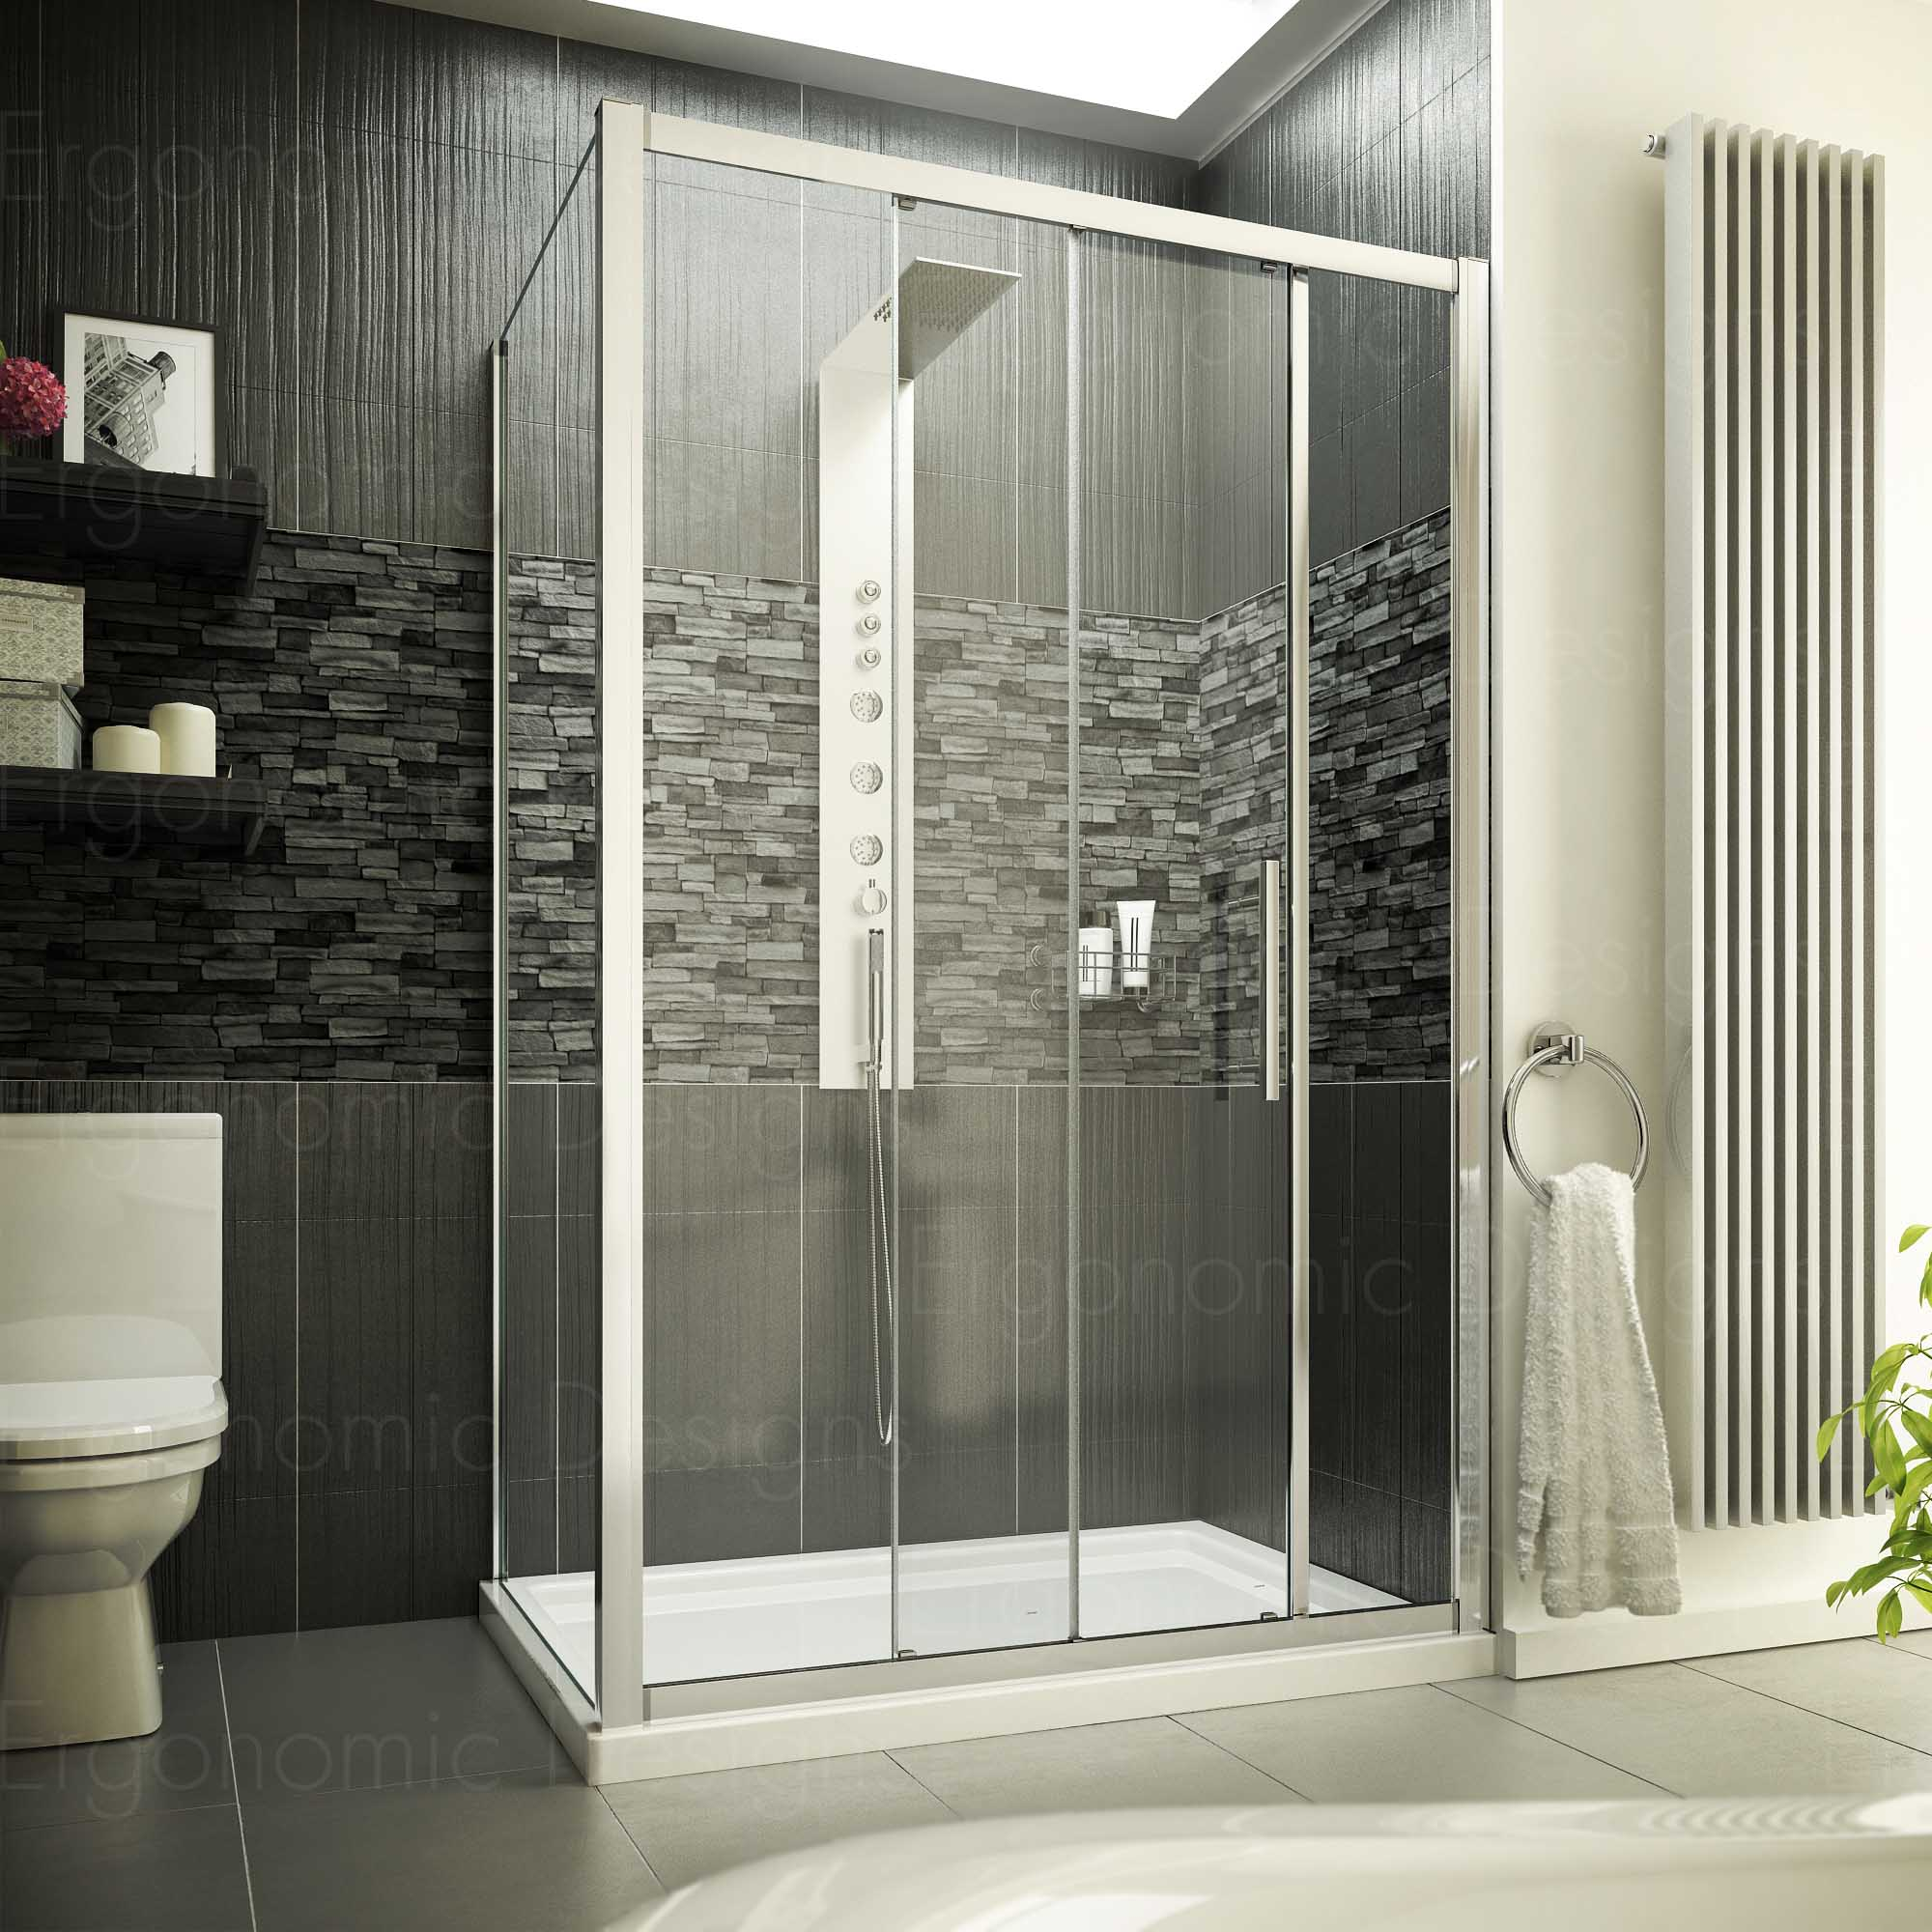 New 1200 x 760 Sliding Door Shower Enclosure Cubicle with 8mm Easy ...